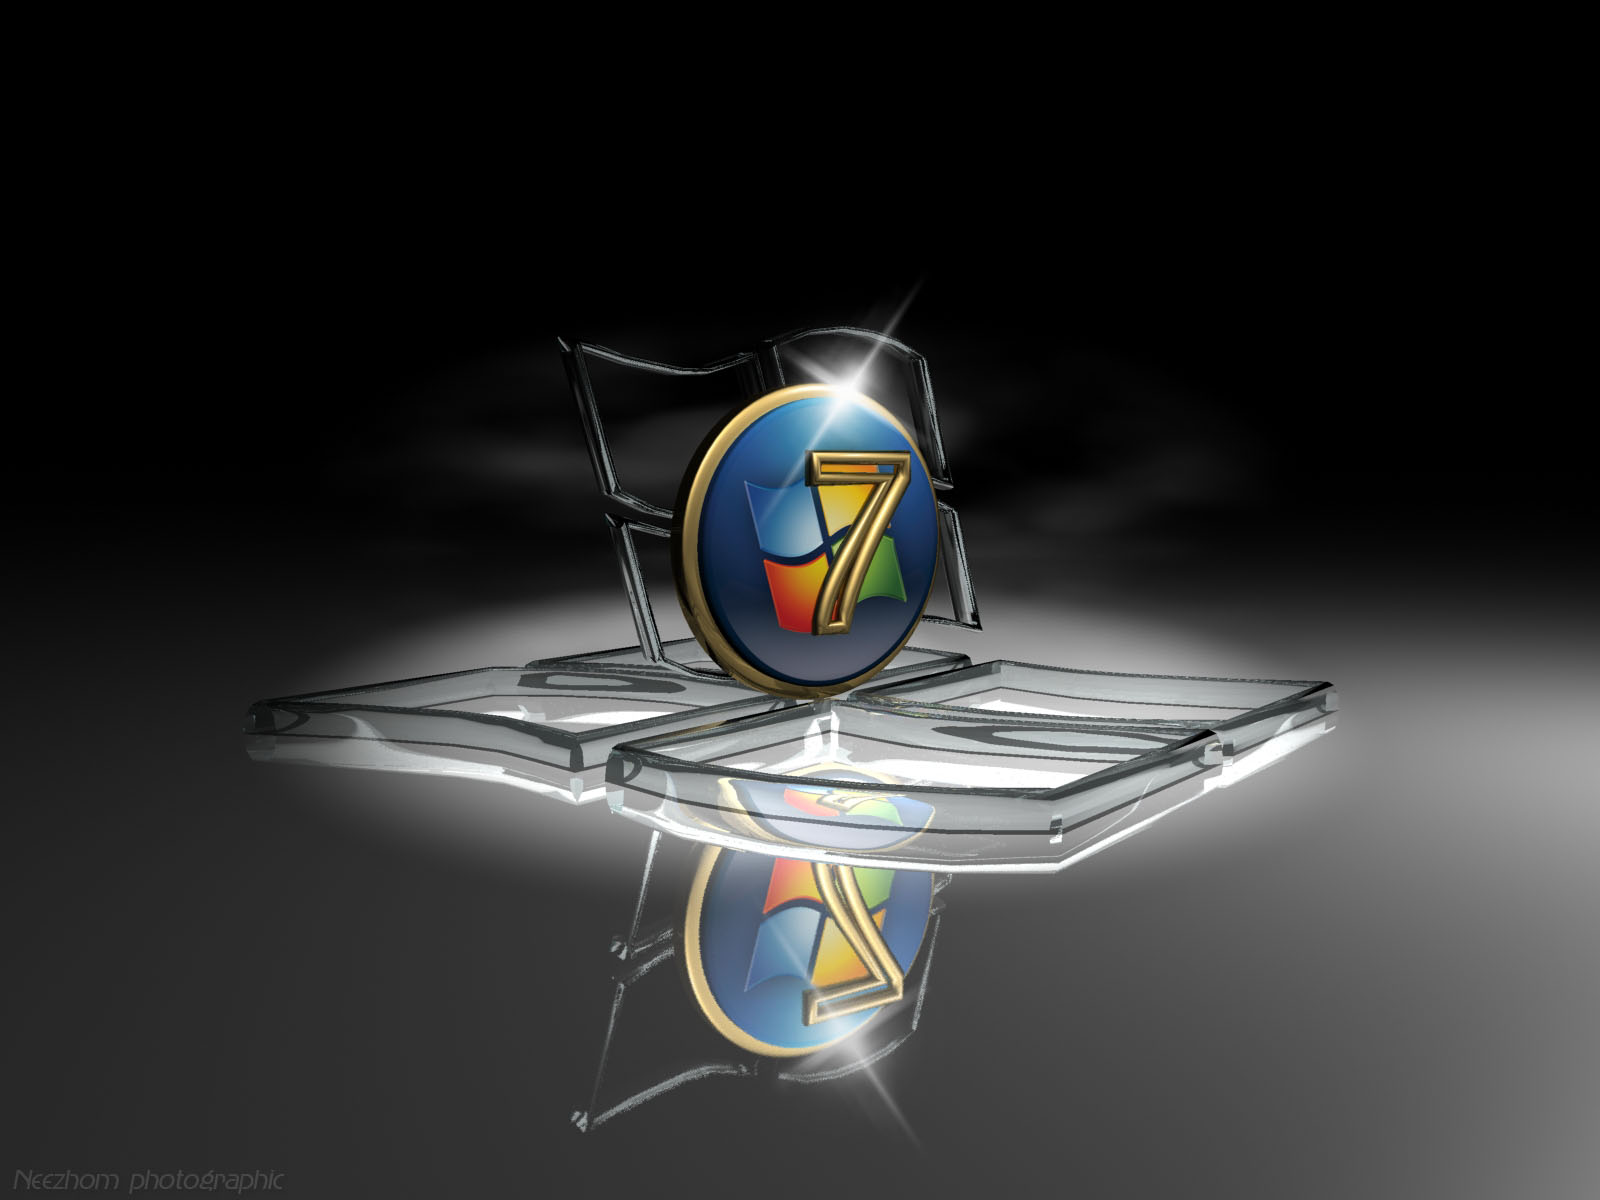 Windows 7 Wallpapers hd free, Windows Wallpapers,